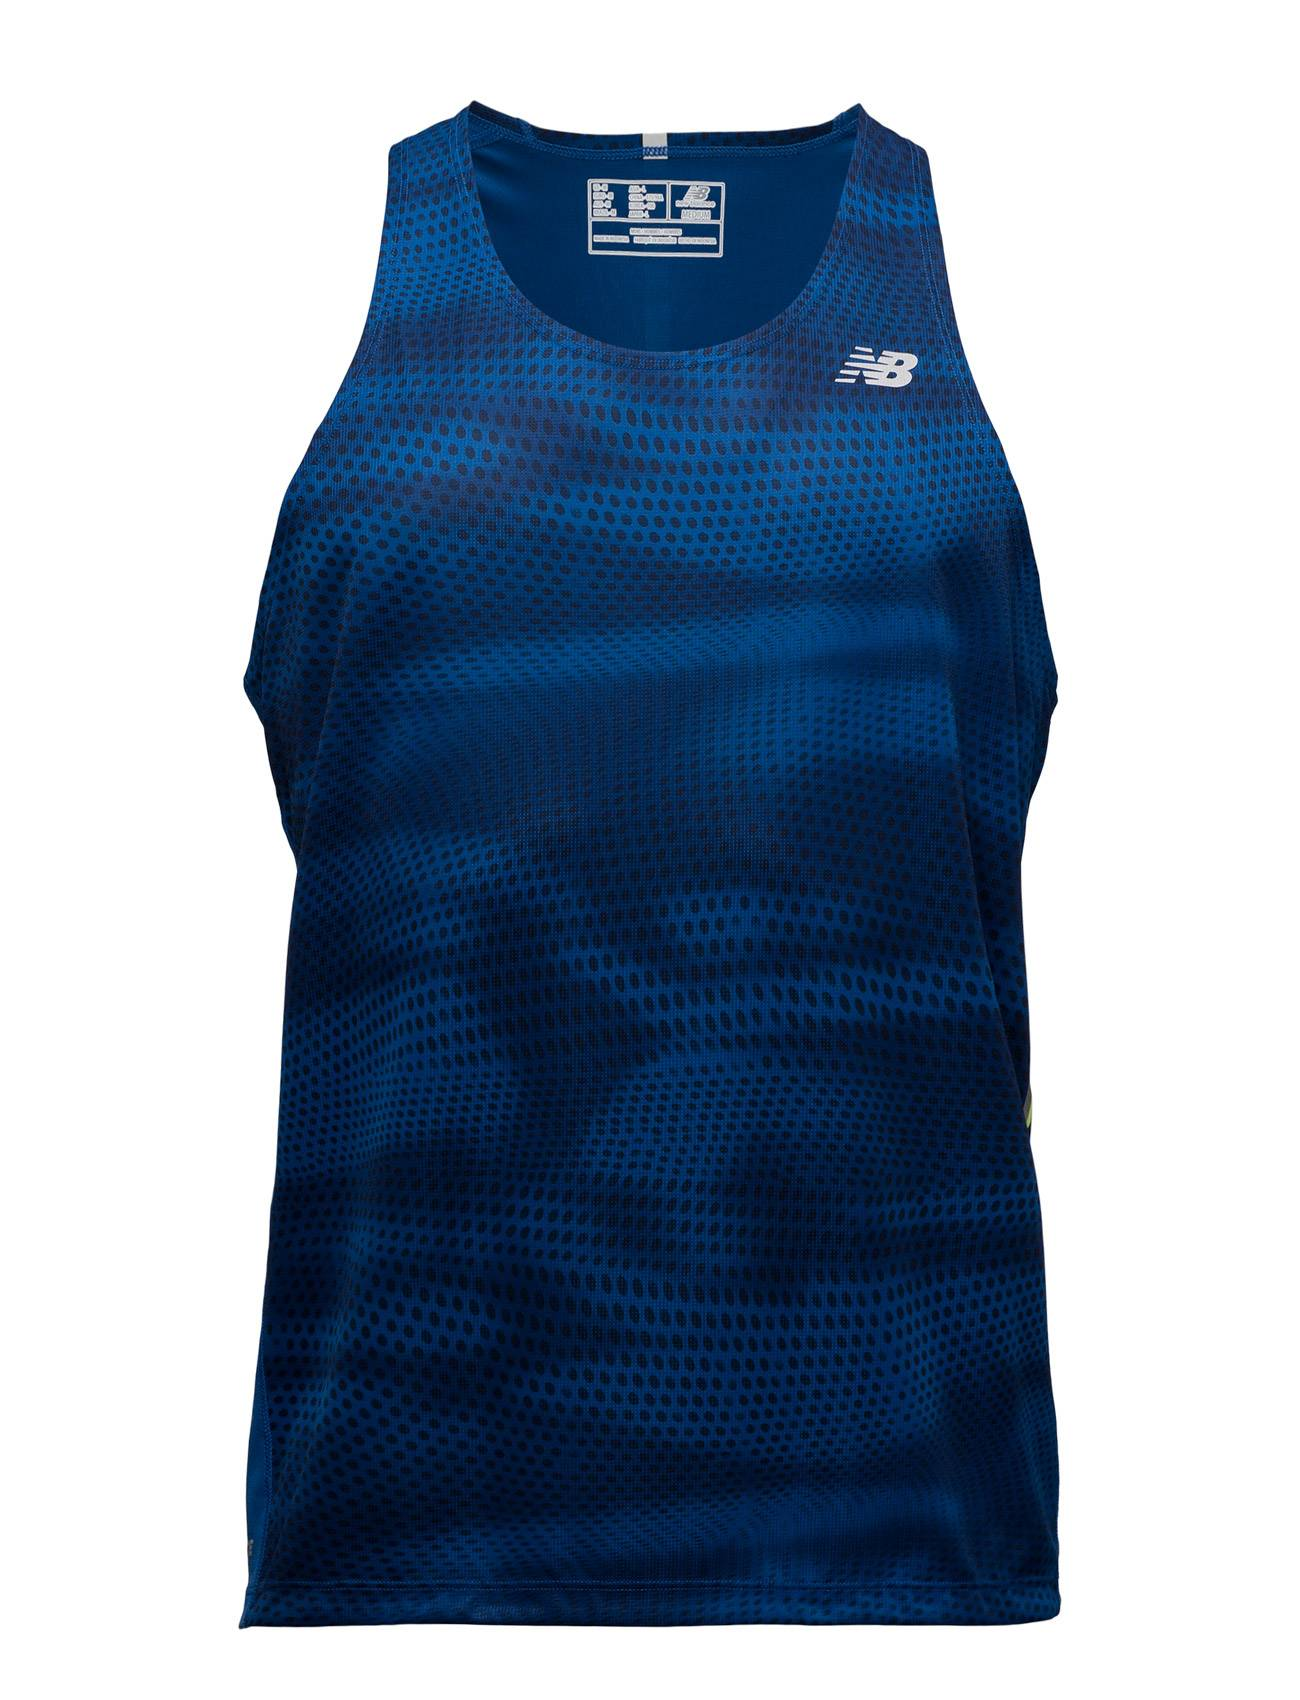 New Balance Nb Ice Singlet